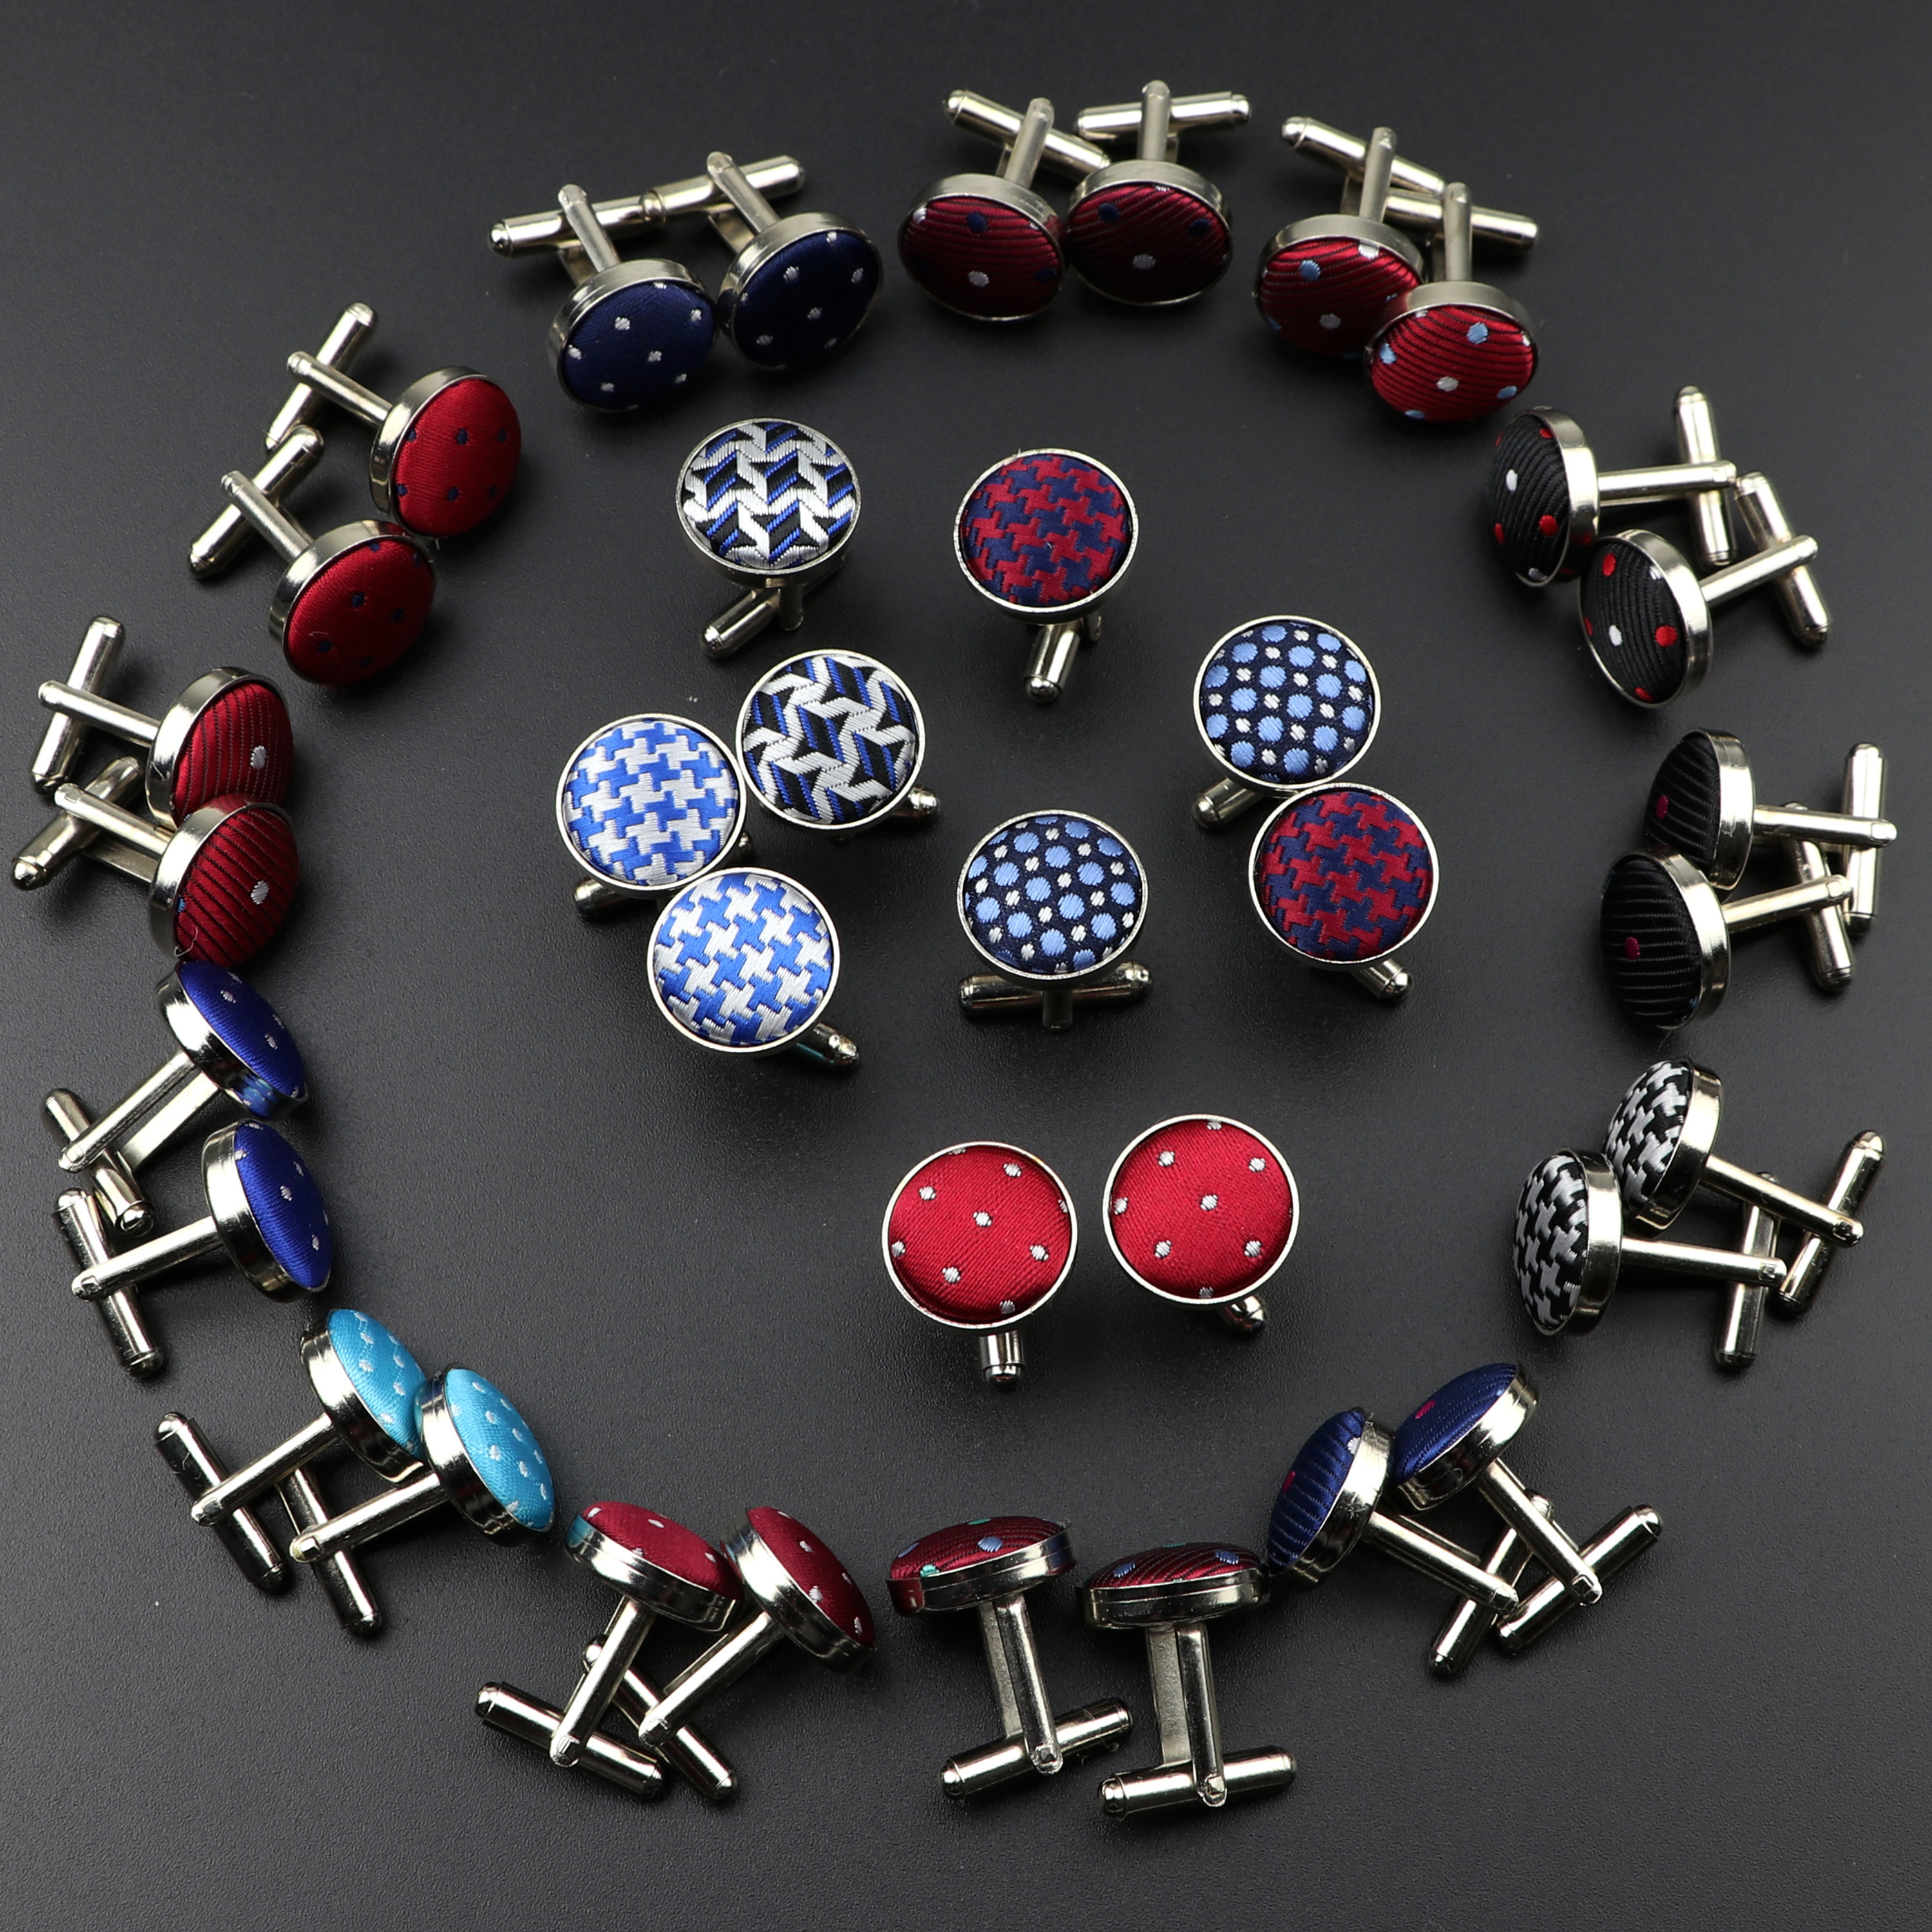 Mens Round Braided Jewelry Fashion Shirt Cufflinks For Business Wedding Party Suit Stripe Dot Cuff Link Men Accessories Gift